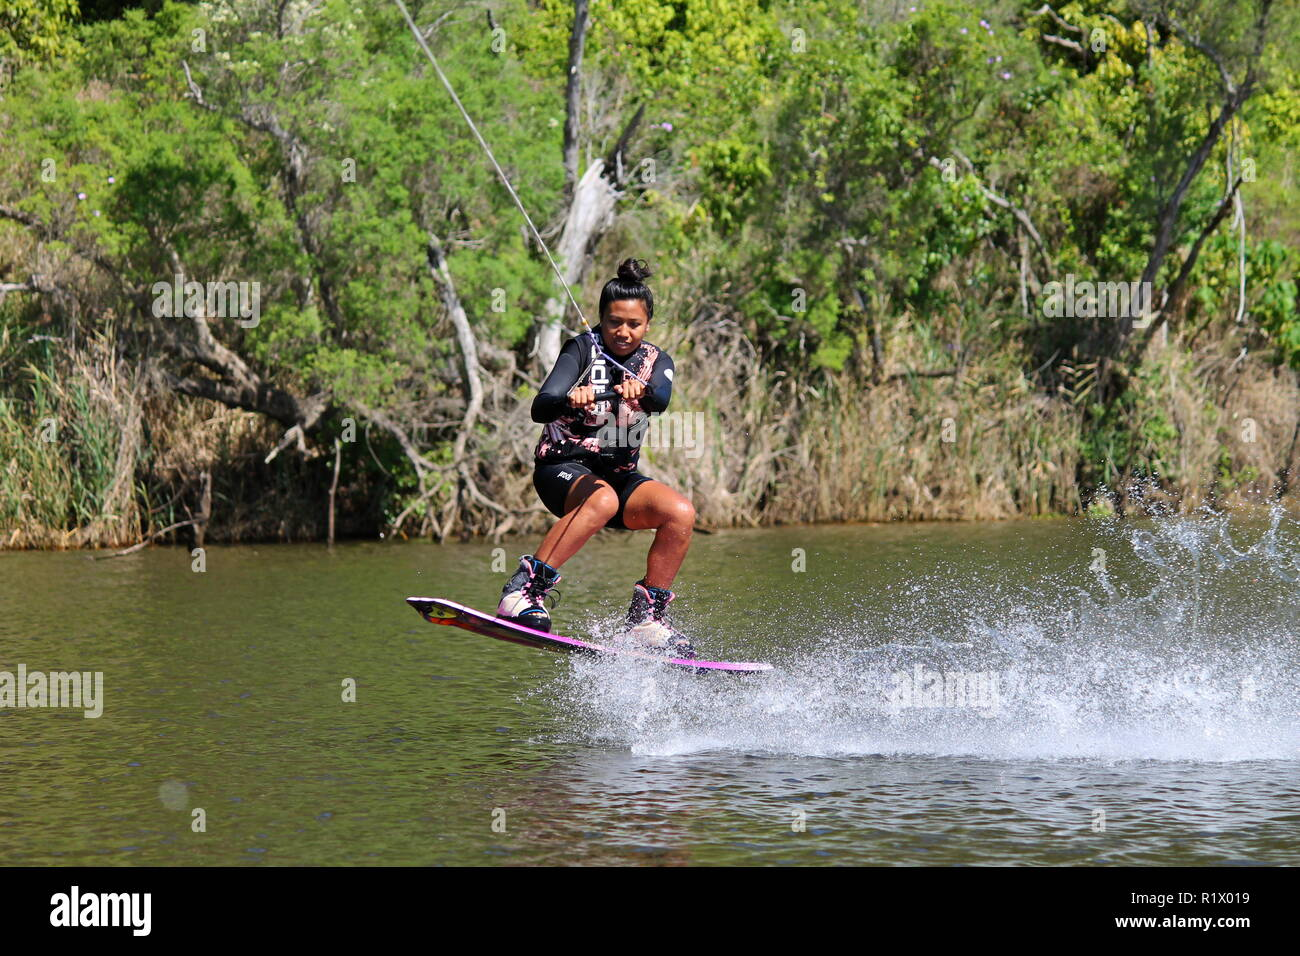 Water sports, Wakeboarding - Stock Image